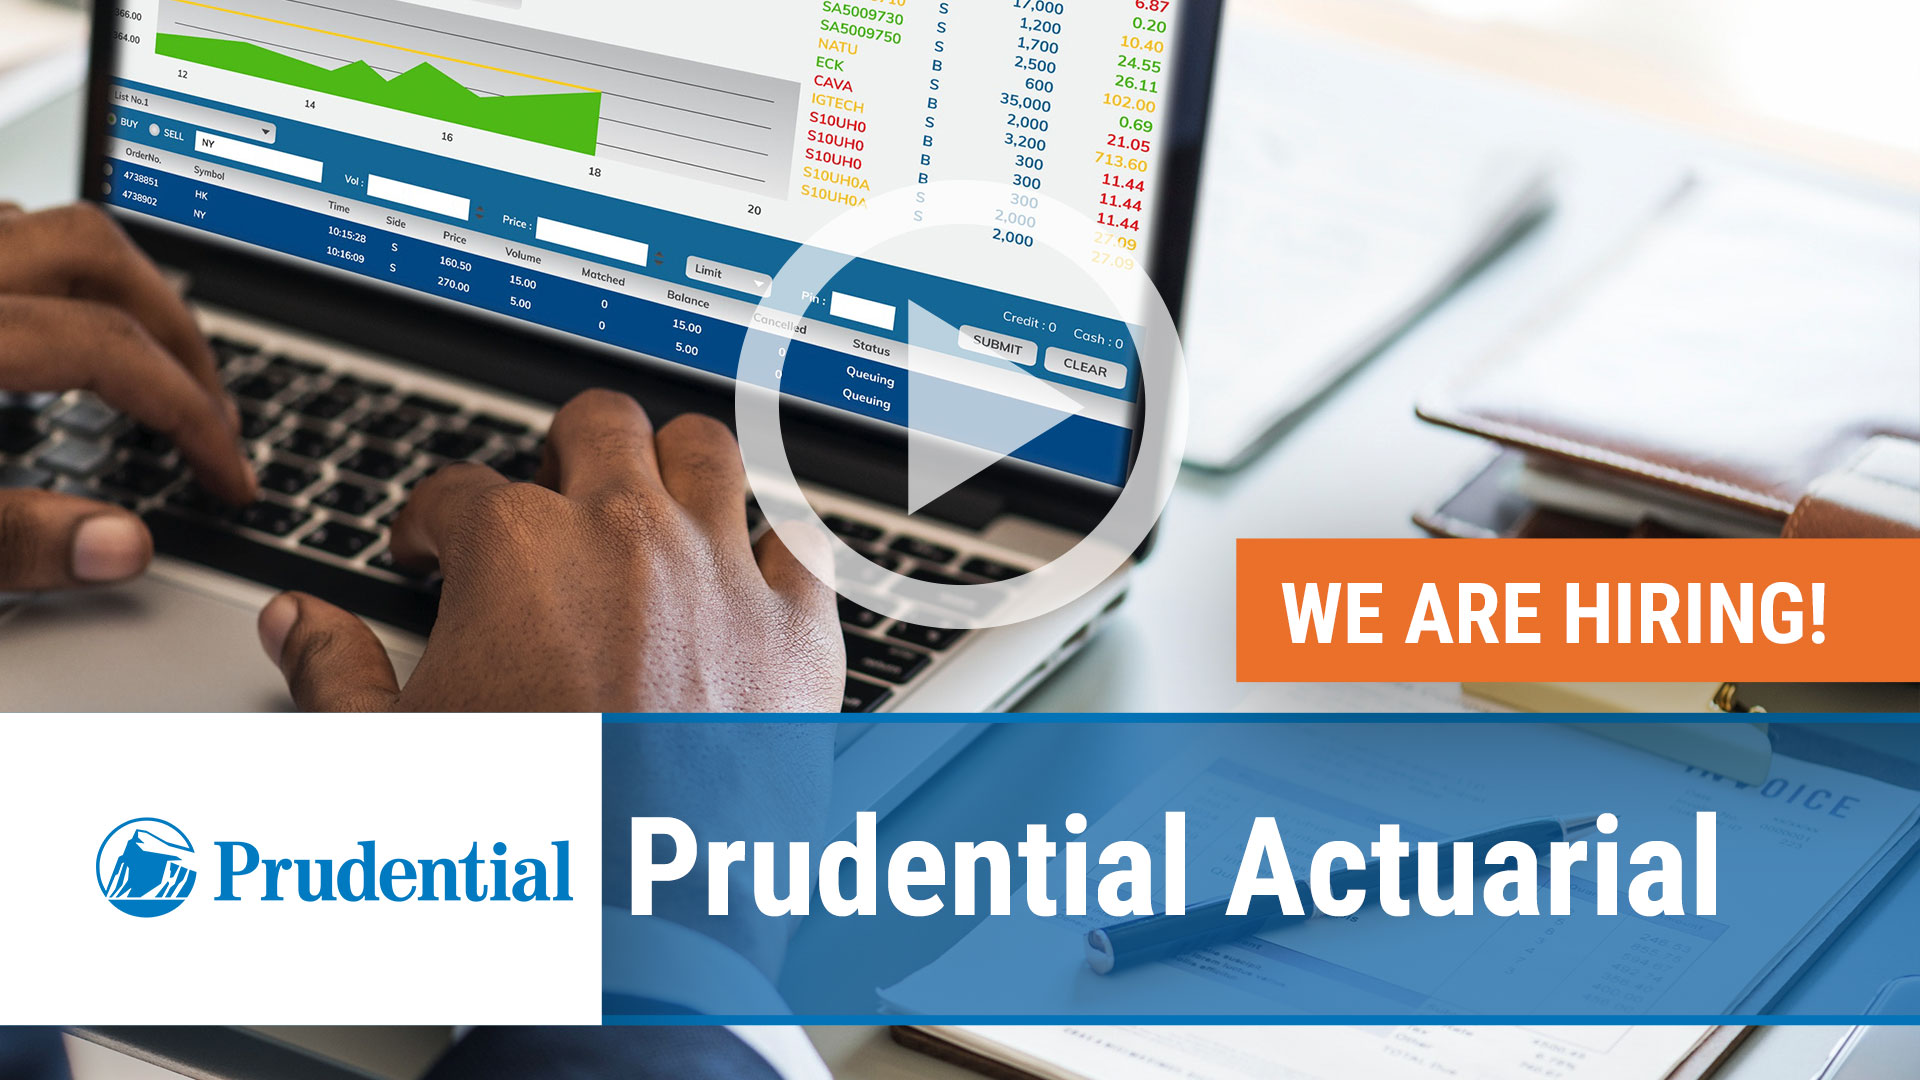 Watch our careers video for available job opening Prudential Actuarial in Roseland, NJ